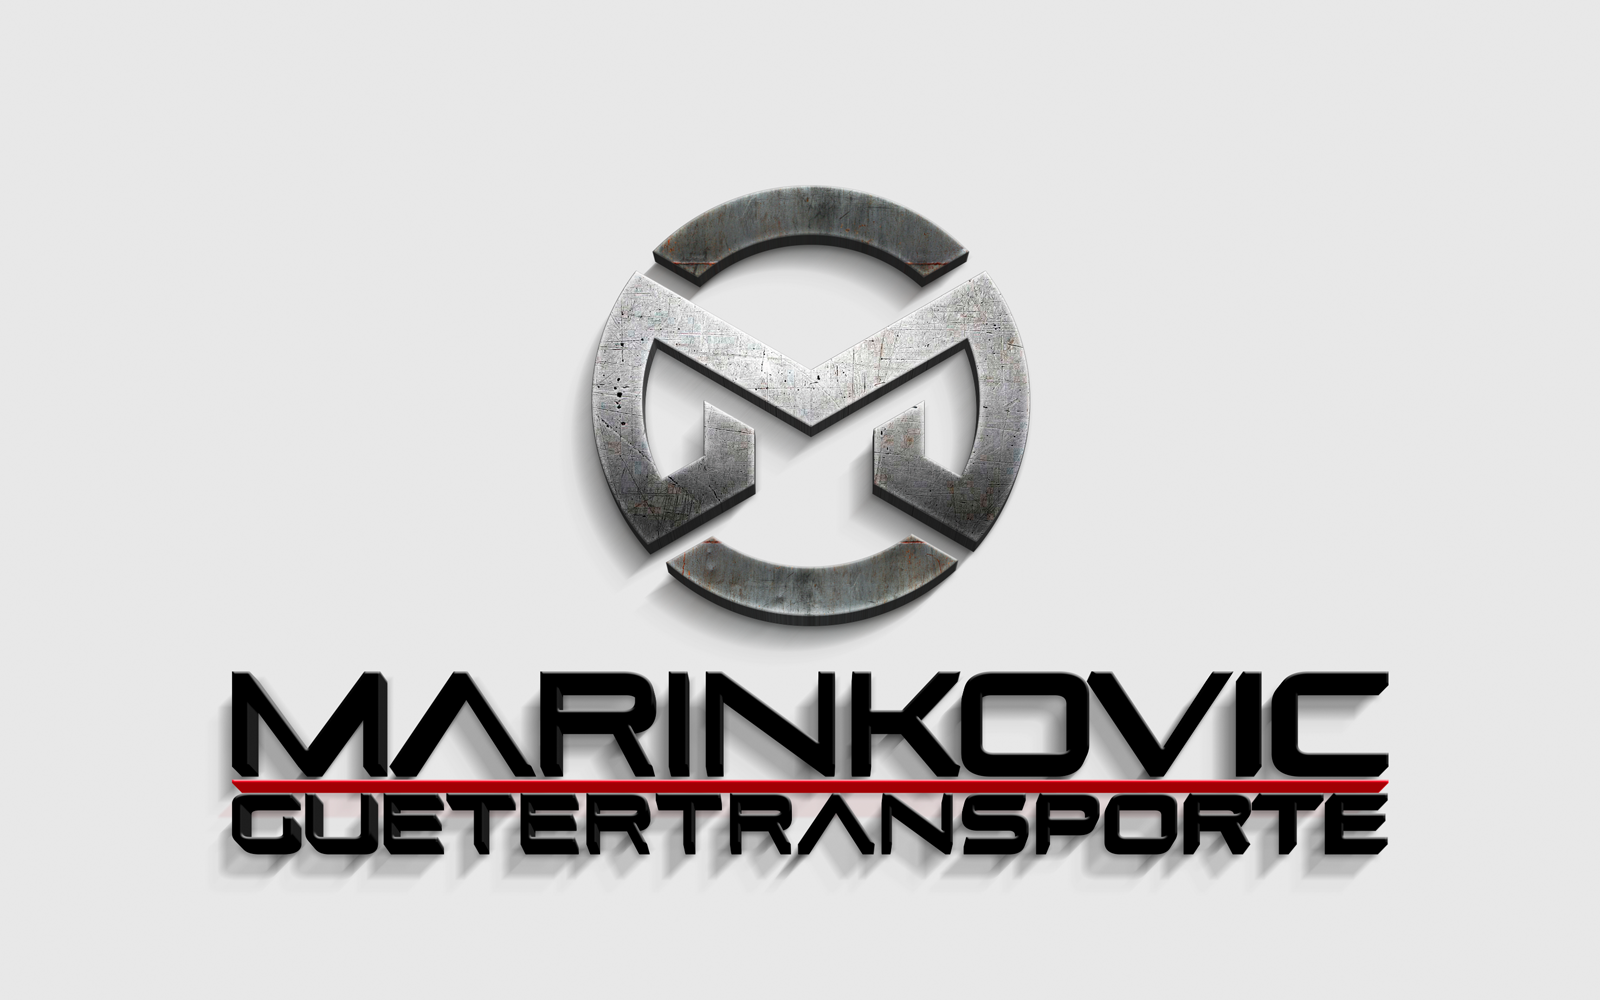 Marinkovic Transporte KG Logo Design